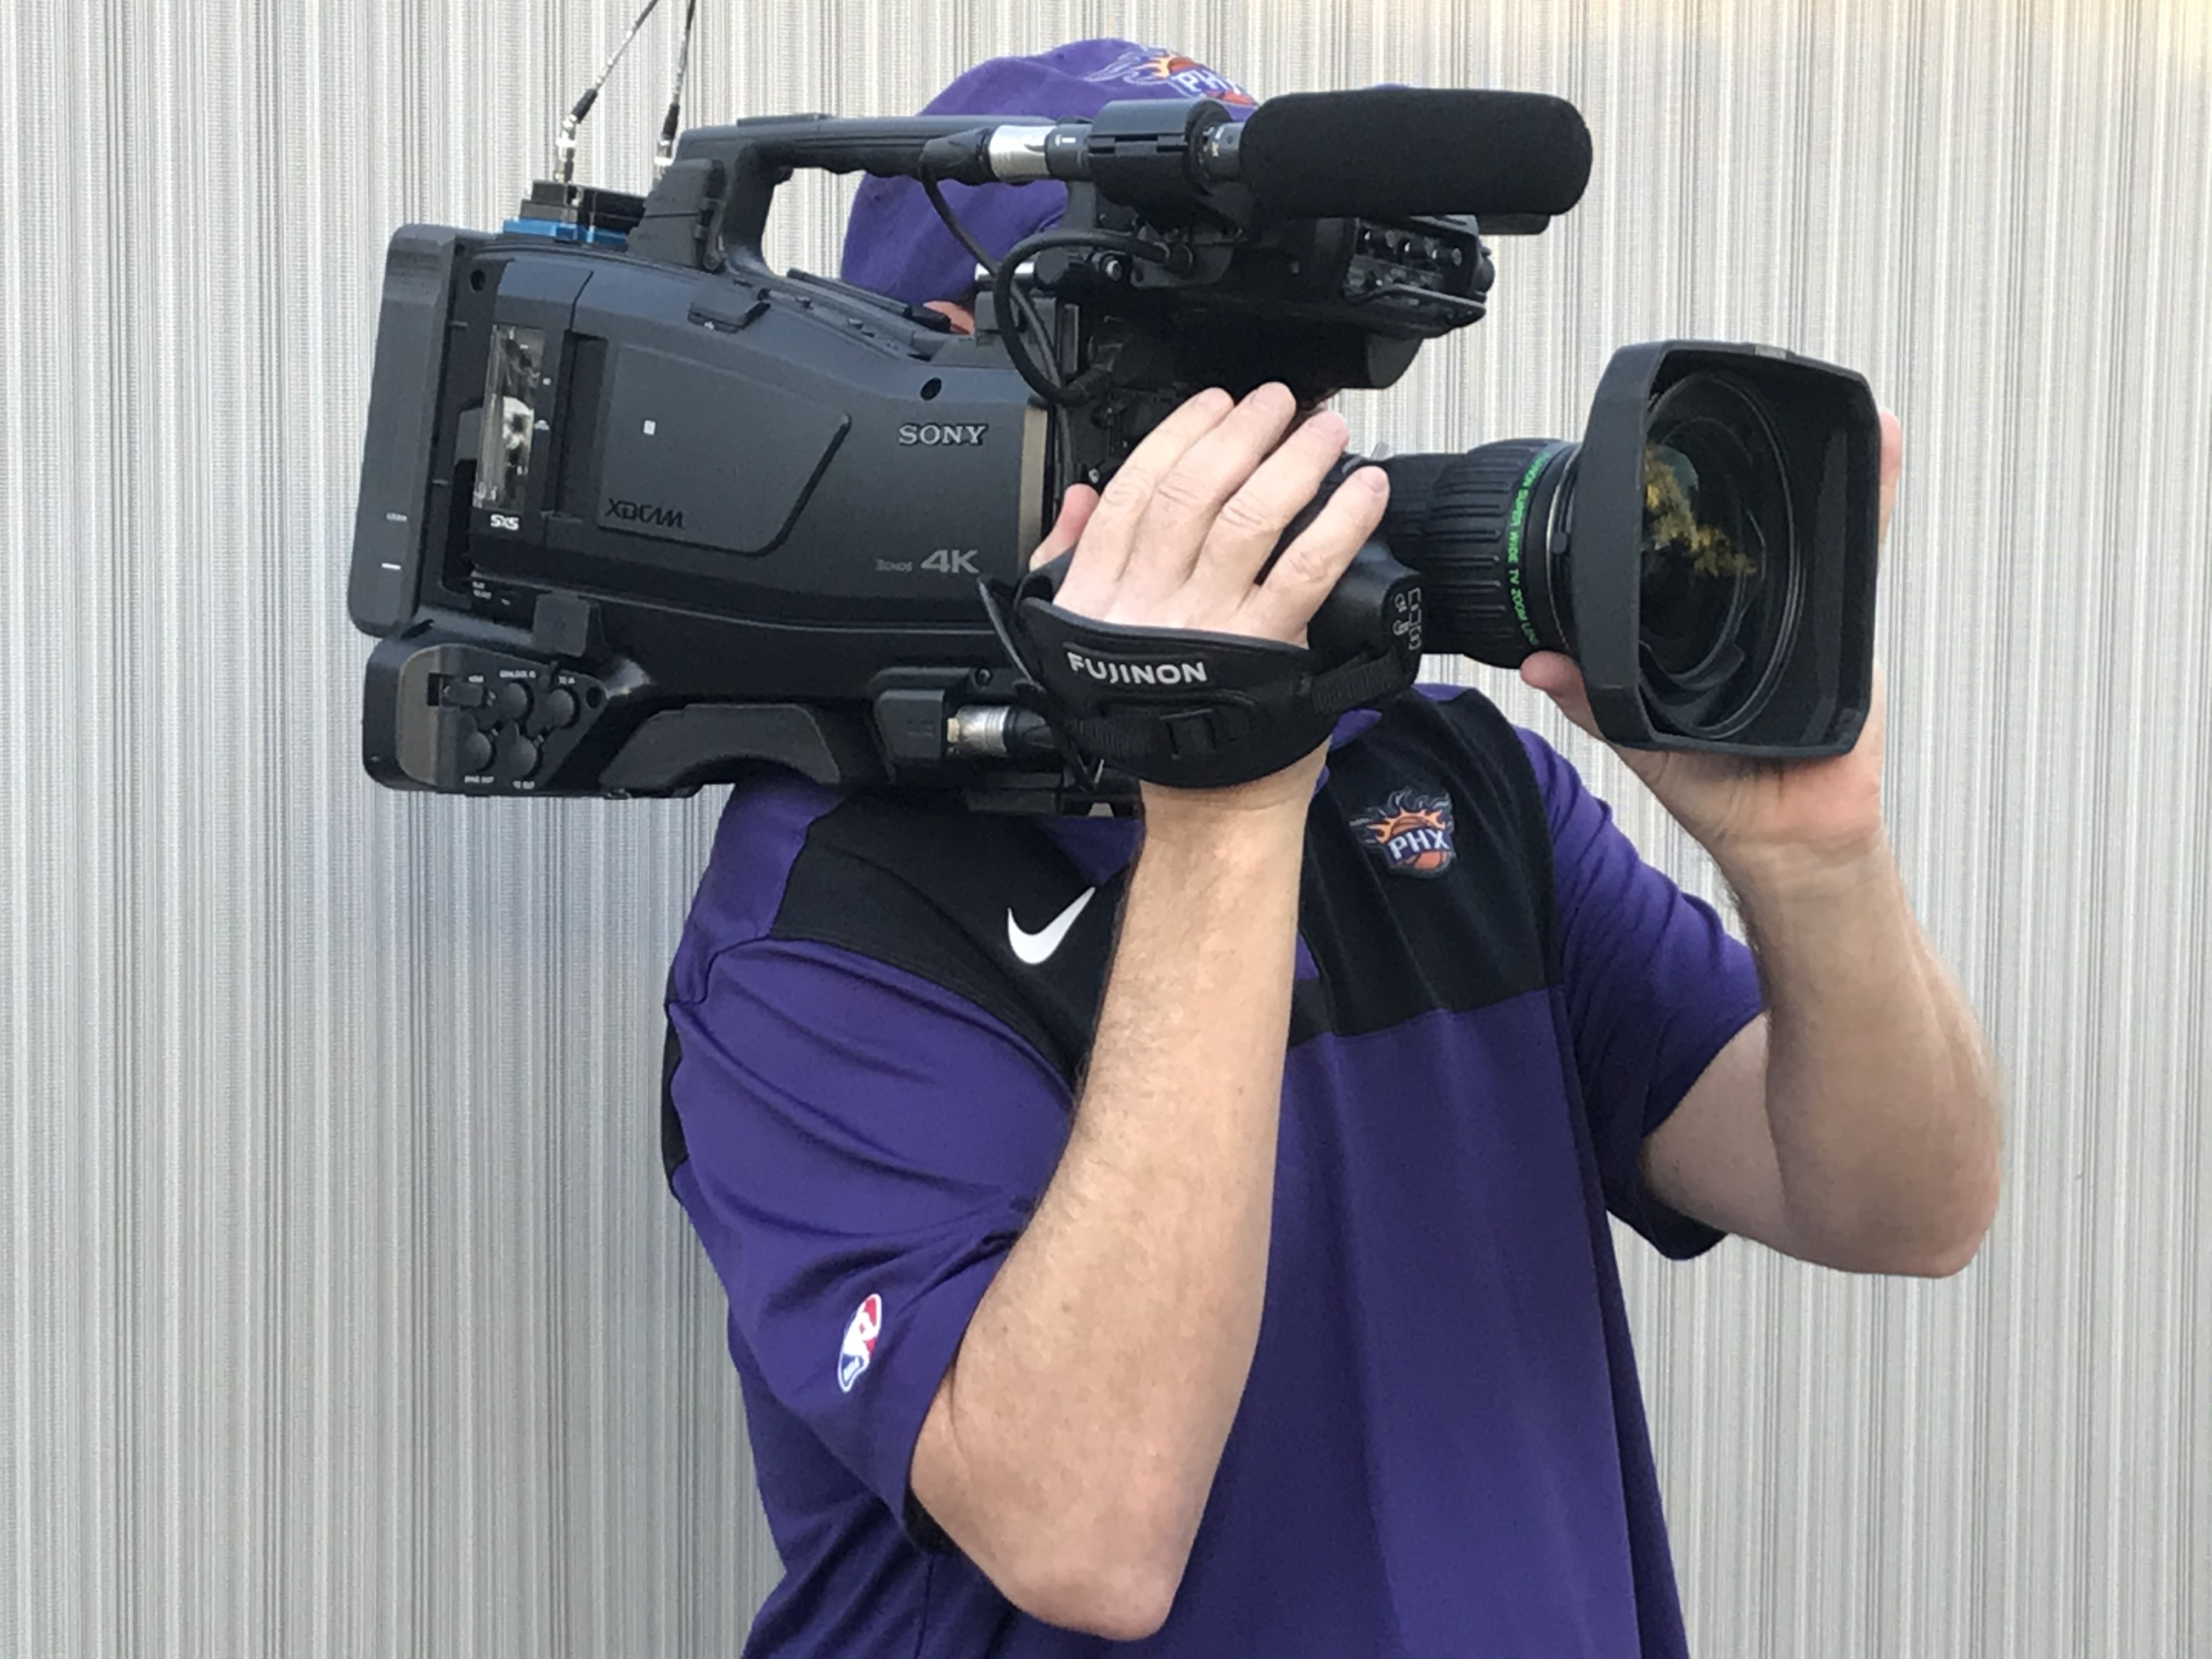 Sony's PXW-Z750 Camera Shines for the Phoenix Suns